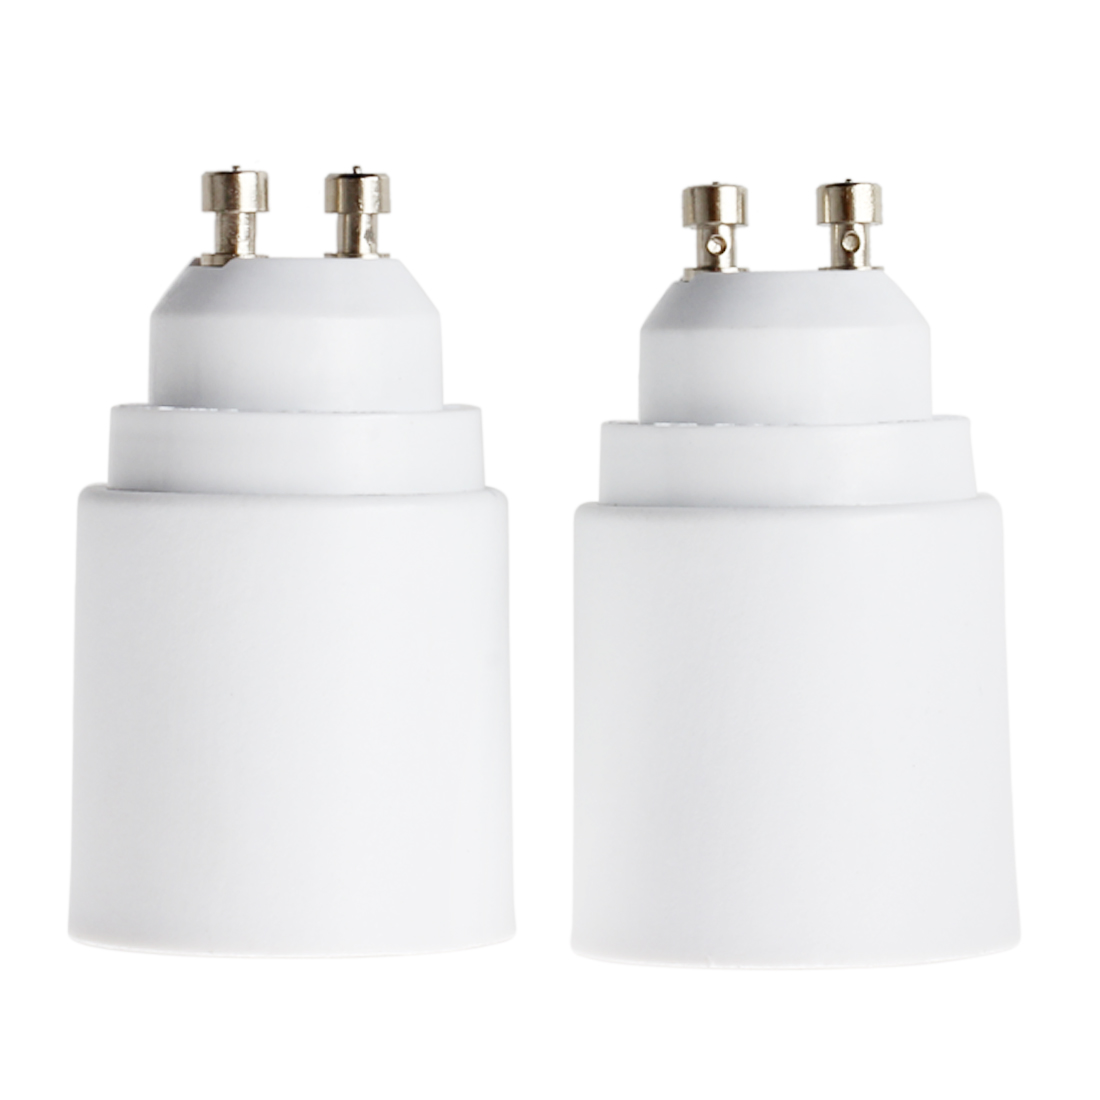 2 Packs White LED Light GU10 to E27 Plug Adapter